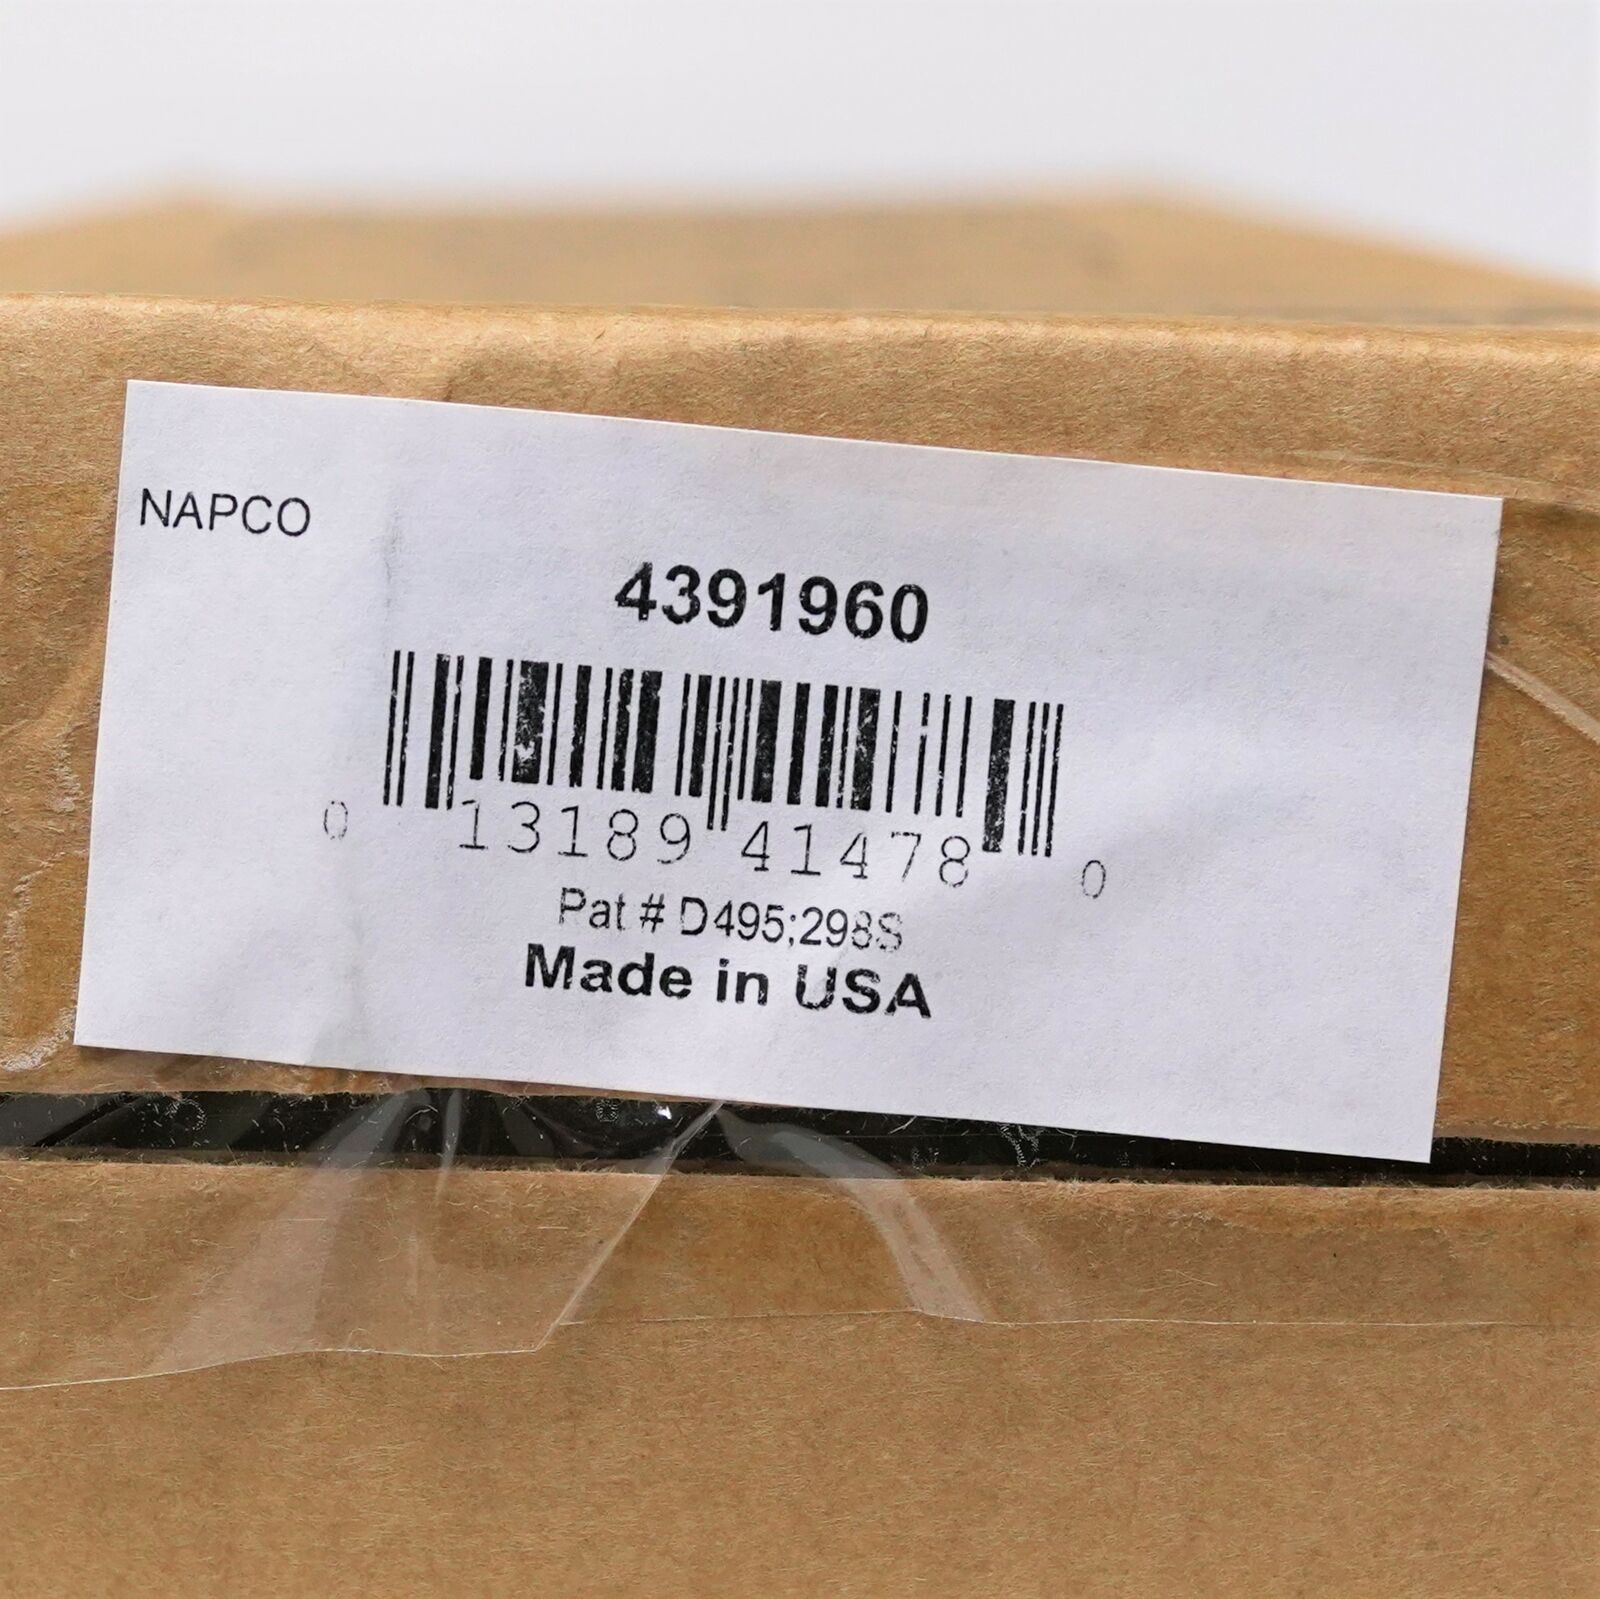 4391960 r Napco 4391960 Electric Clothes Dryer Heat Element whirlpool